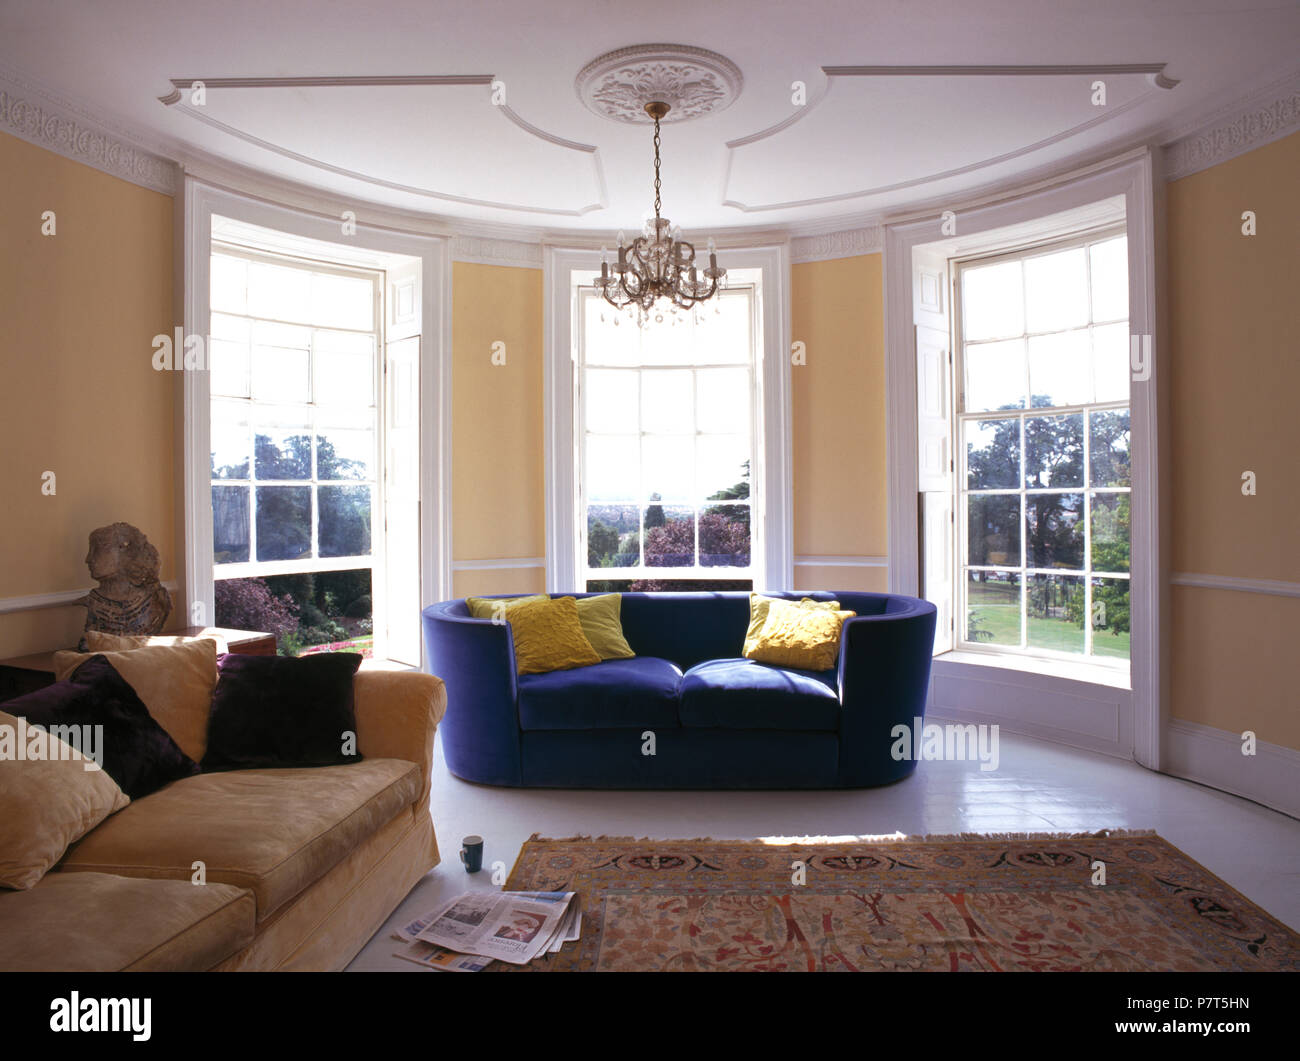 Blue sofa in bay window of large country sitting room Stock Photo